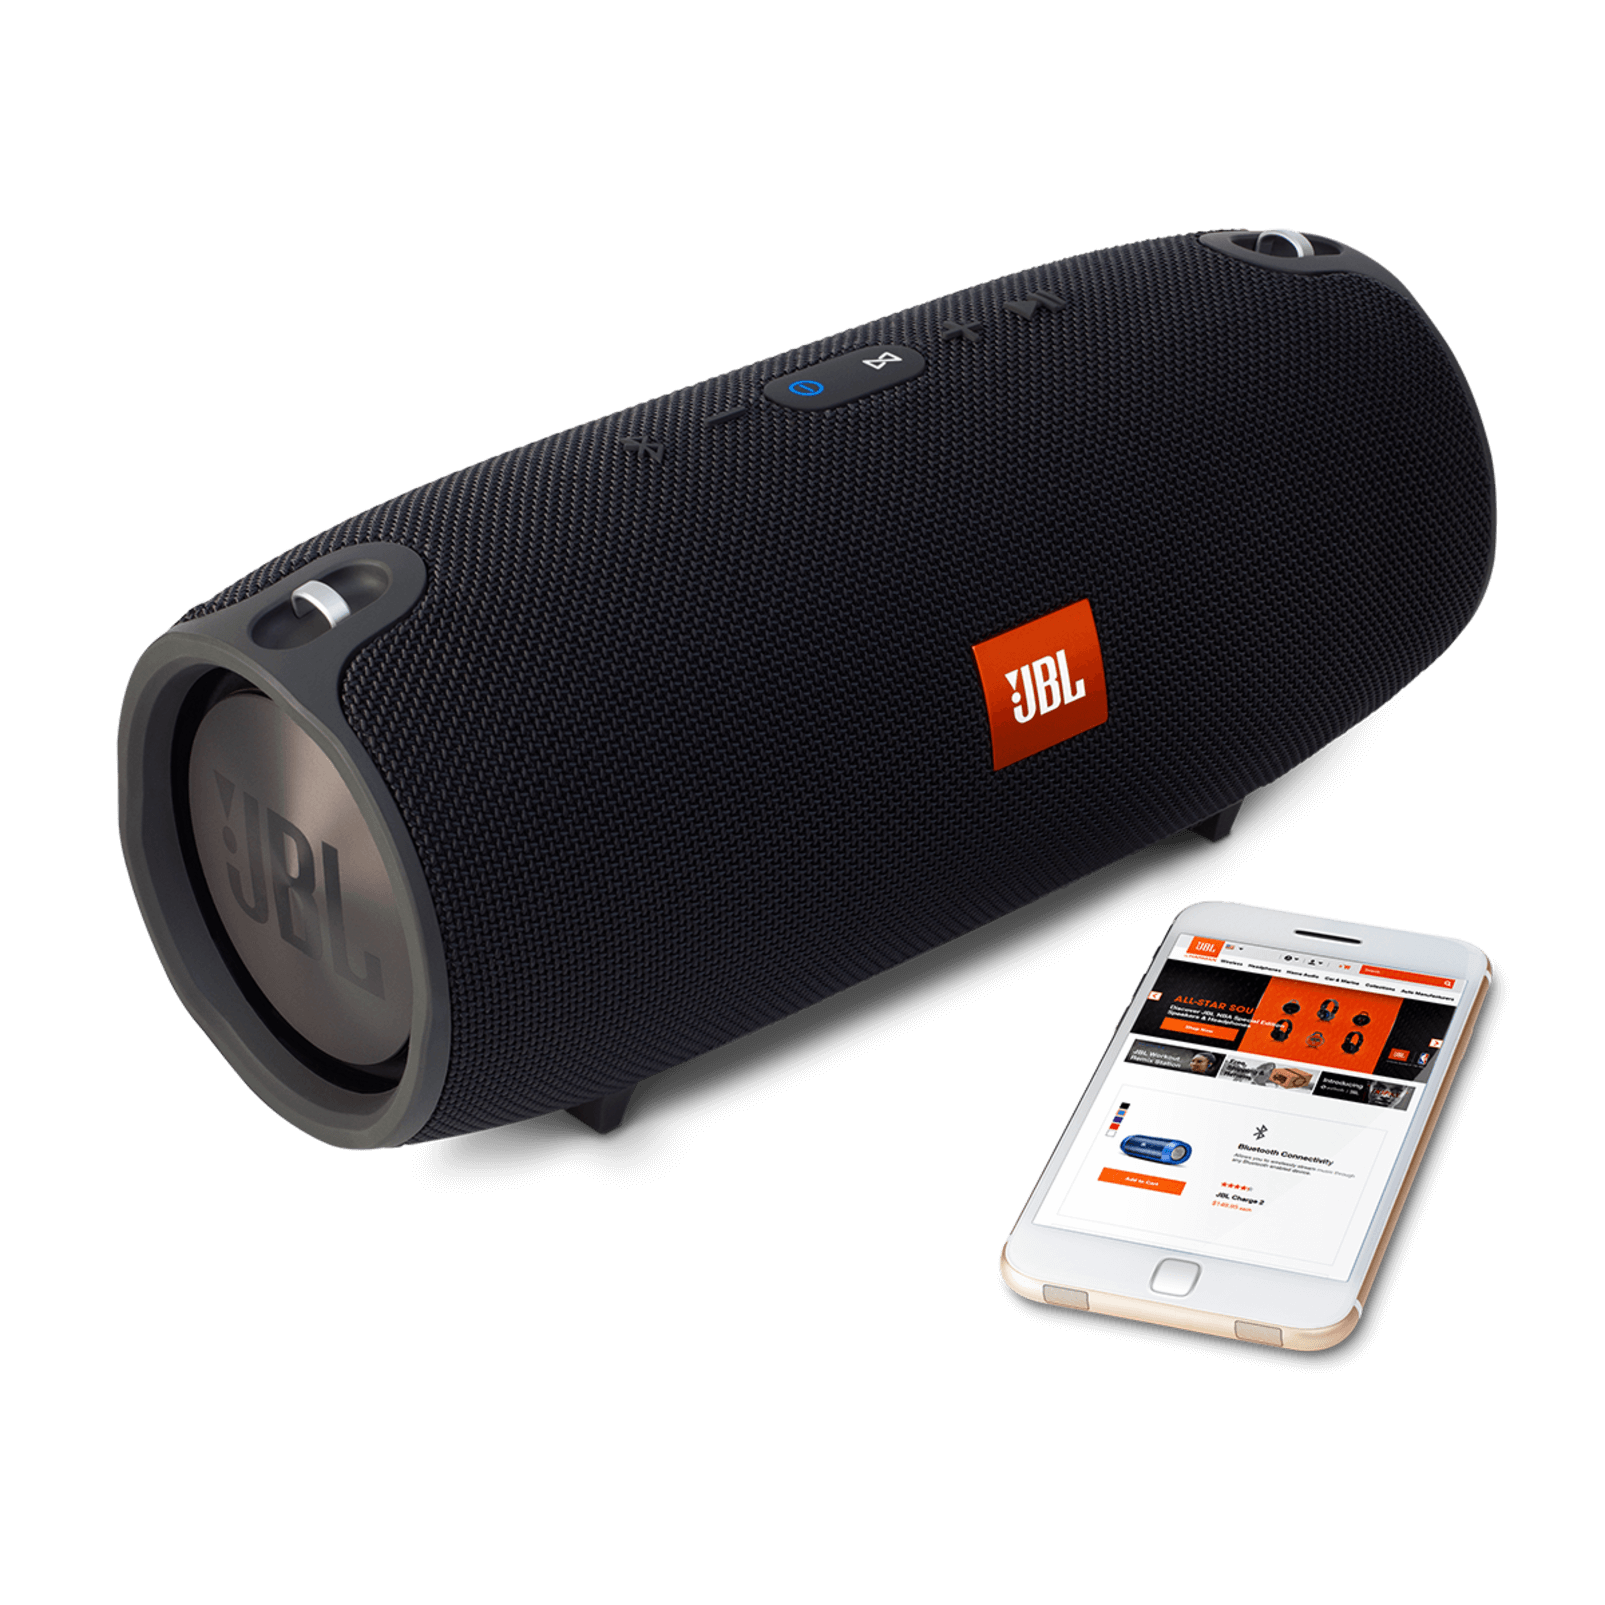 jbl-bluetooth-speakers-5